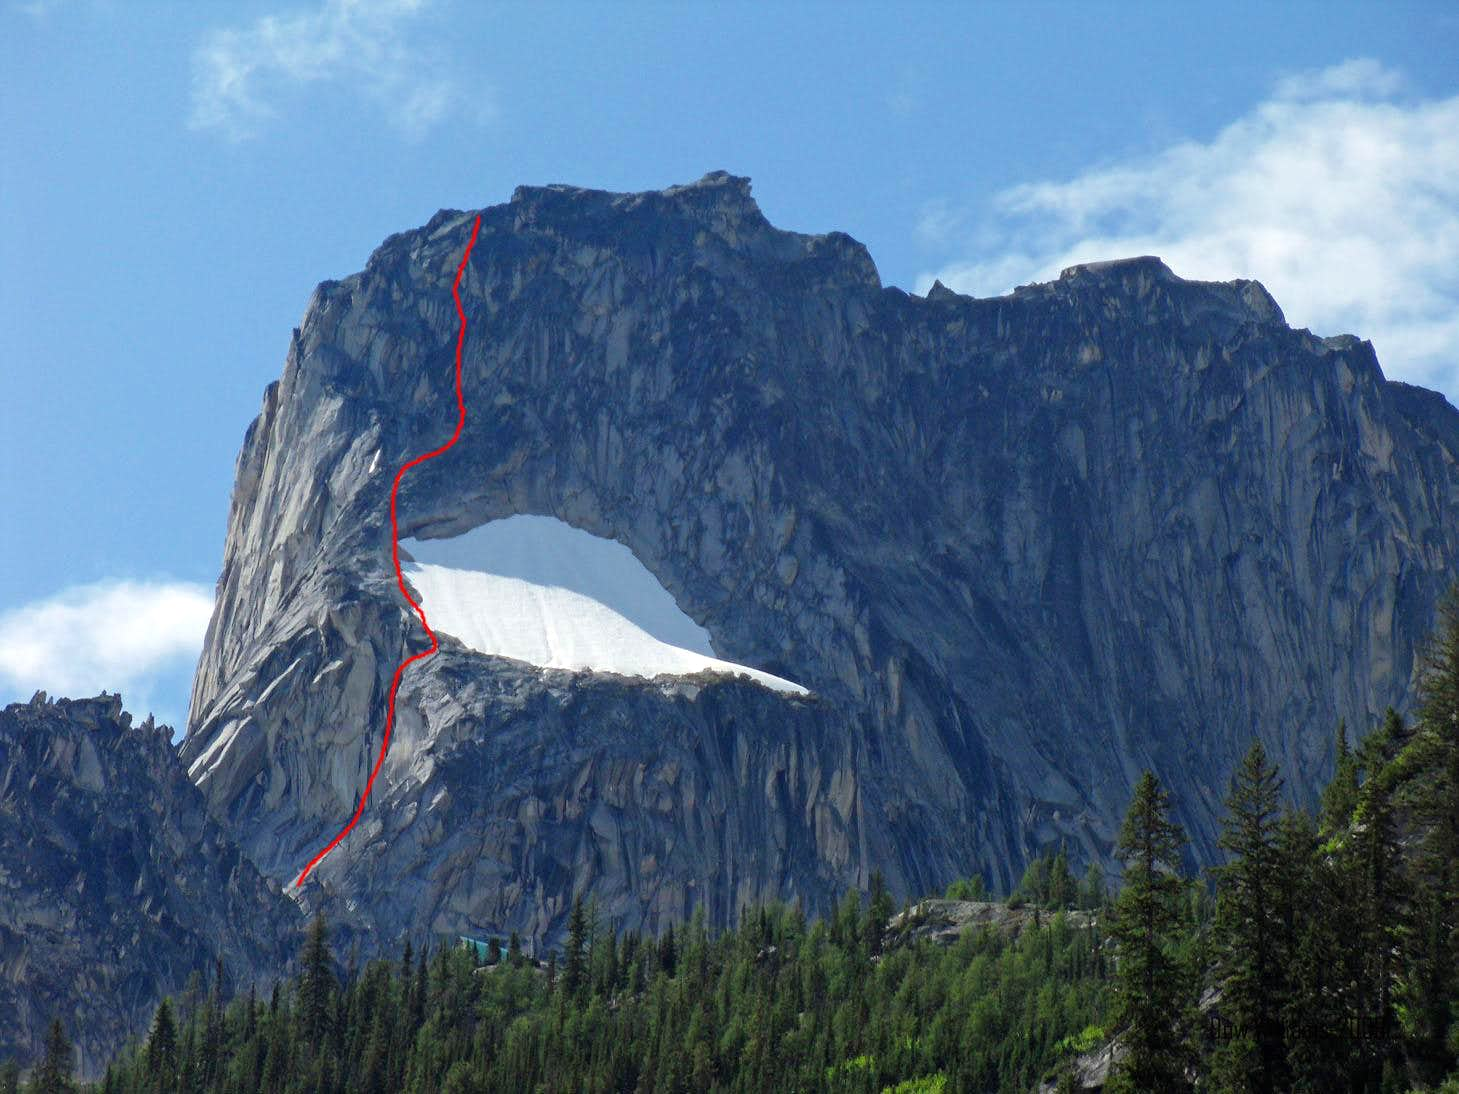 Snowpatch Route, IV, 5.8, 19 Pitches